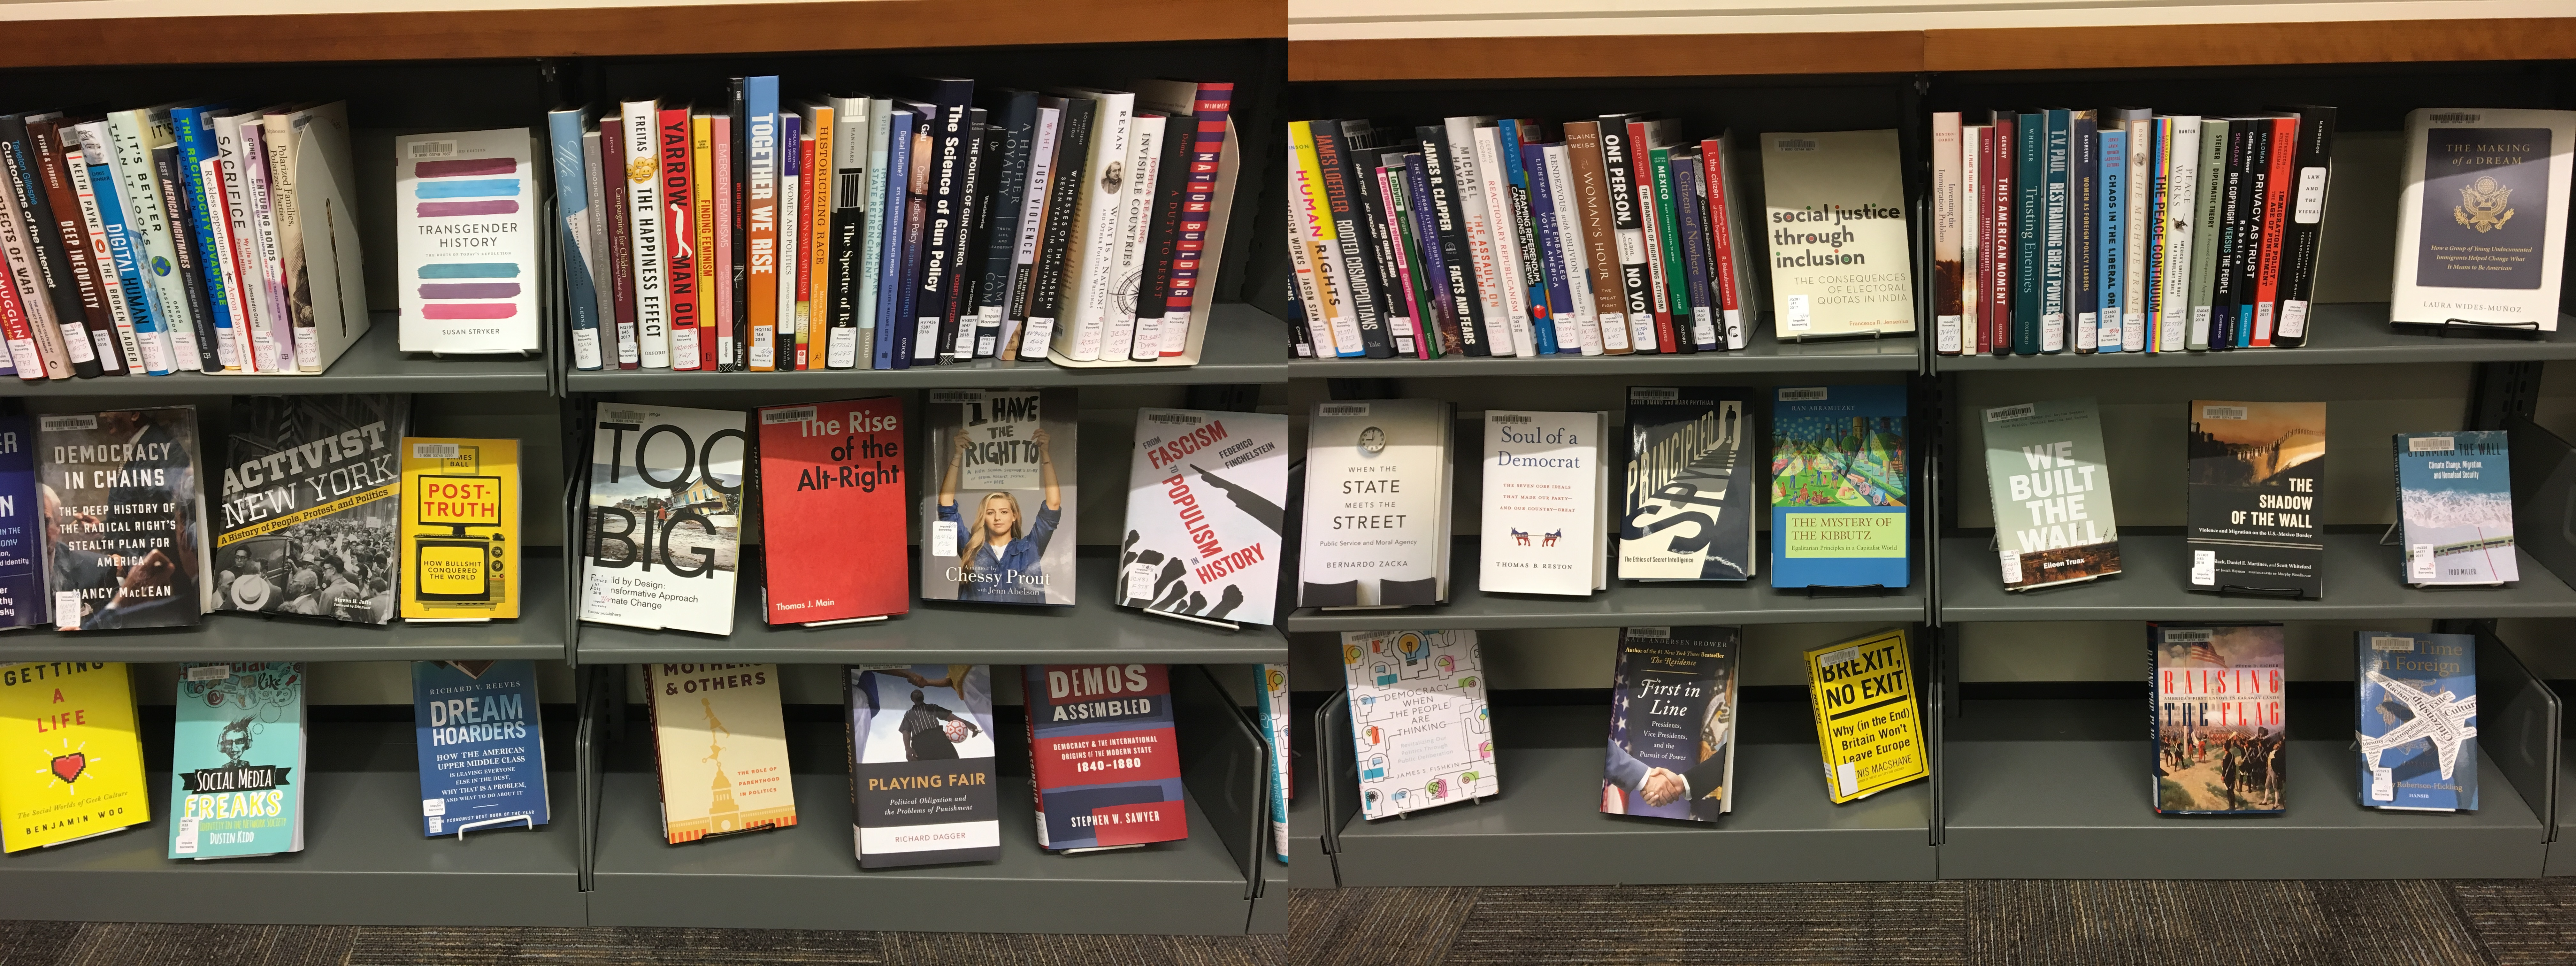 Two photos of shelves of books. The books are all nonfiction and primarily have titles focused on historical events and social research.